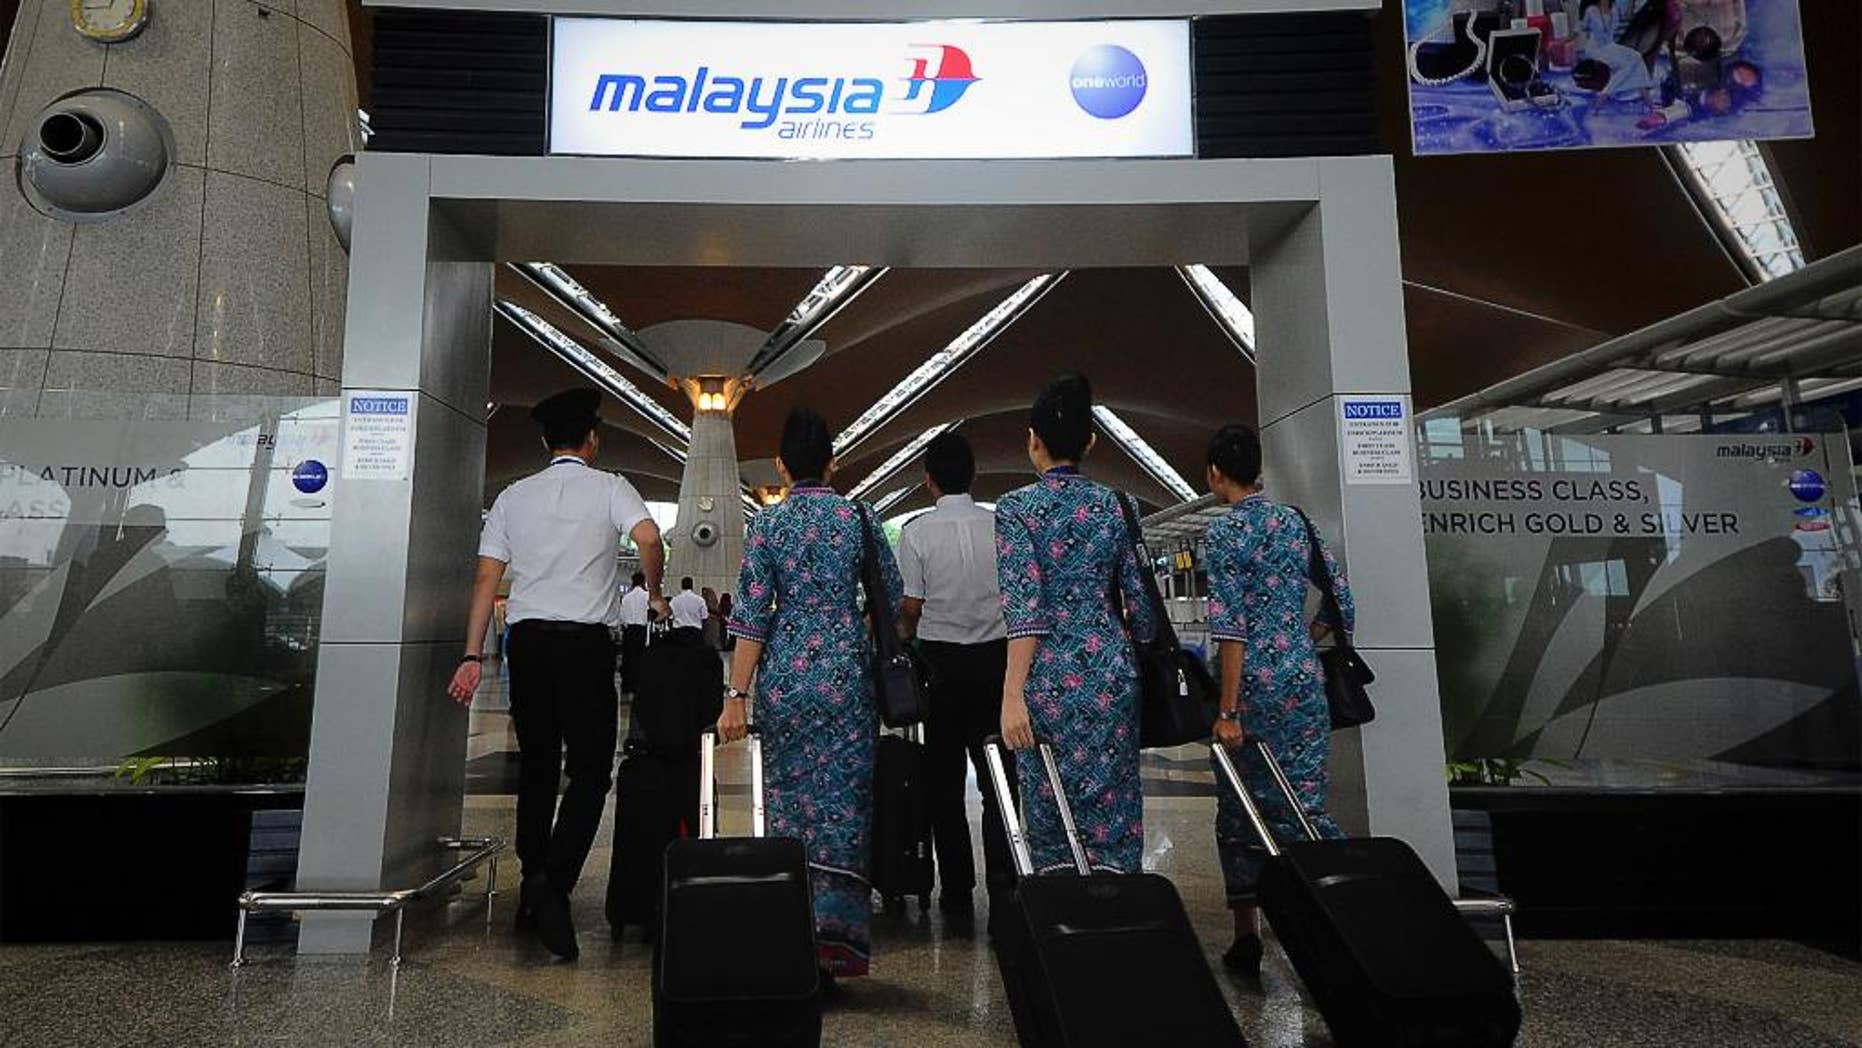 """FILE - In this April 10, 2014, file photo, a Malaysia Airlines crew walks into a check in area at Kuala Lumpur International Airport in Sepang, Malaysia. New Malaysia Airlines CEO, Christoph Mueller, 52, comes to the post fresh from a stint reviving Ireland's Aer Lingus. Mueller will be the first foreigner to head the Malaysian state-owned company. Analysts say he's an industry veteran """"battle hardened"""" from his work carrying out corporate restructurings at other state-owned airlines, including failed Belgian carrier Sabena.  (AP Photo/Joshua Paul, File)"""